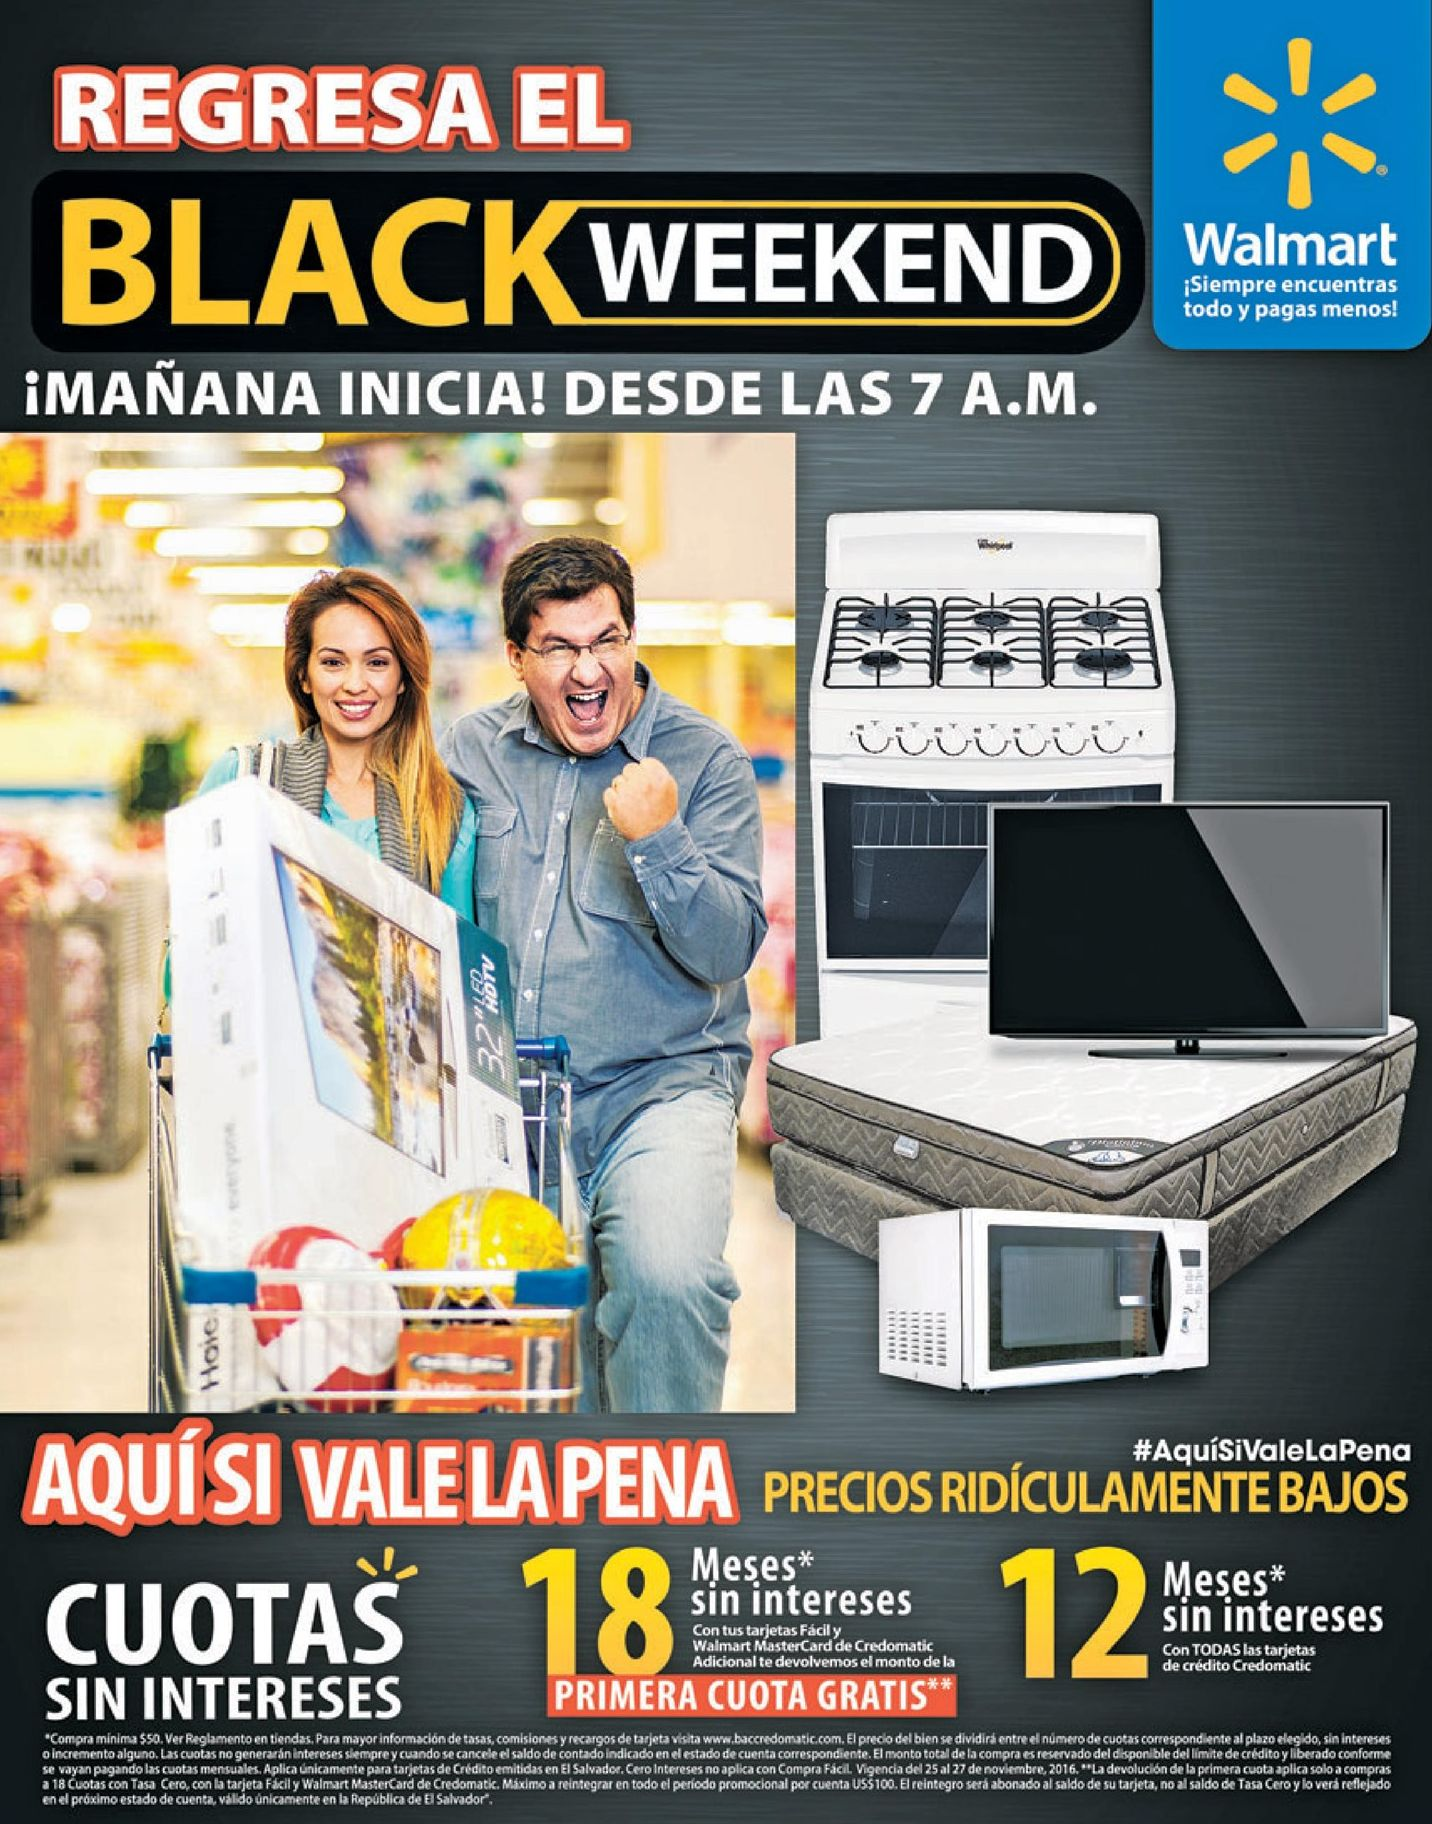 atencion-manana-25nov-regresa-con-mas-ofertas-black-weekend-de-walmart